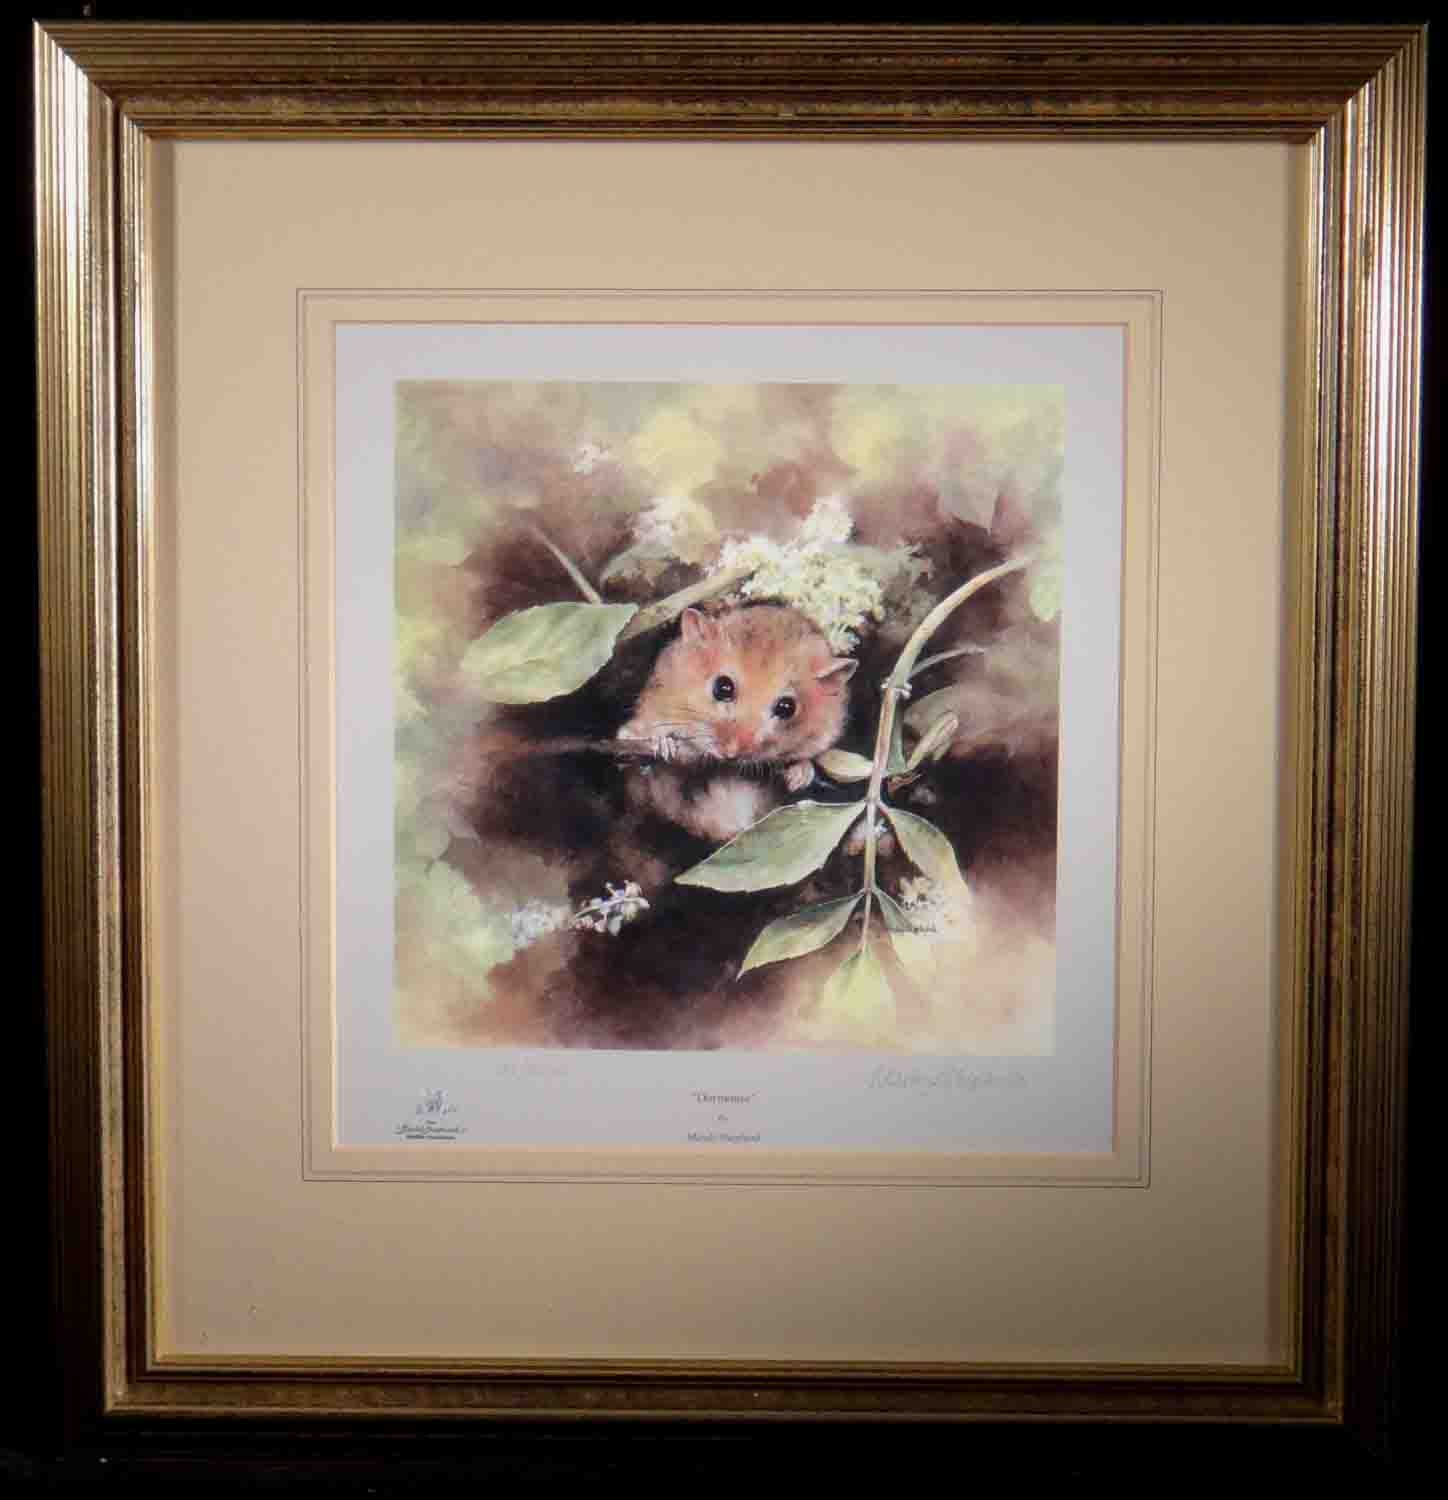 mandy shepherd, dormouse, signed limited edition print